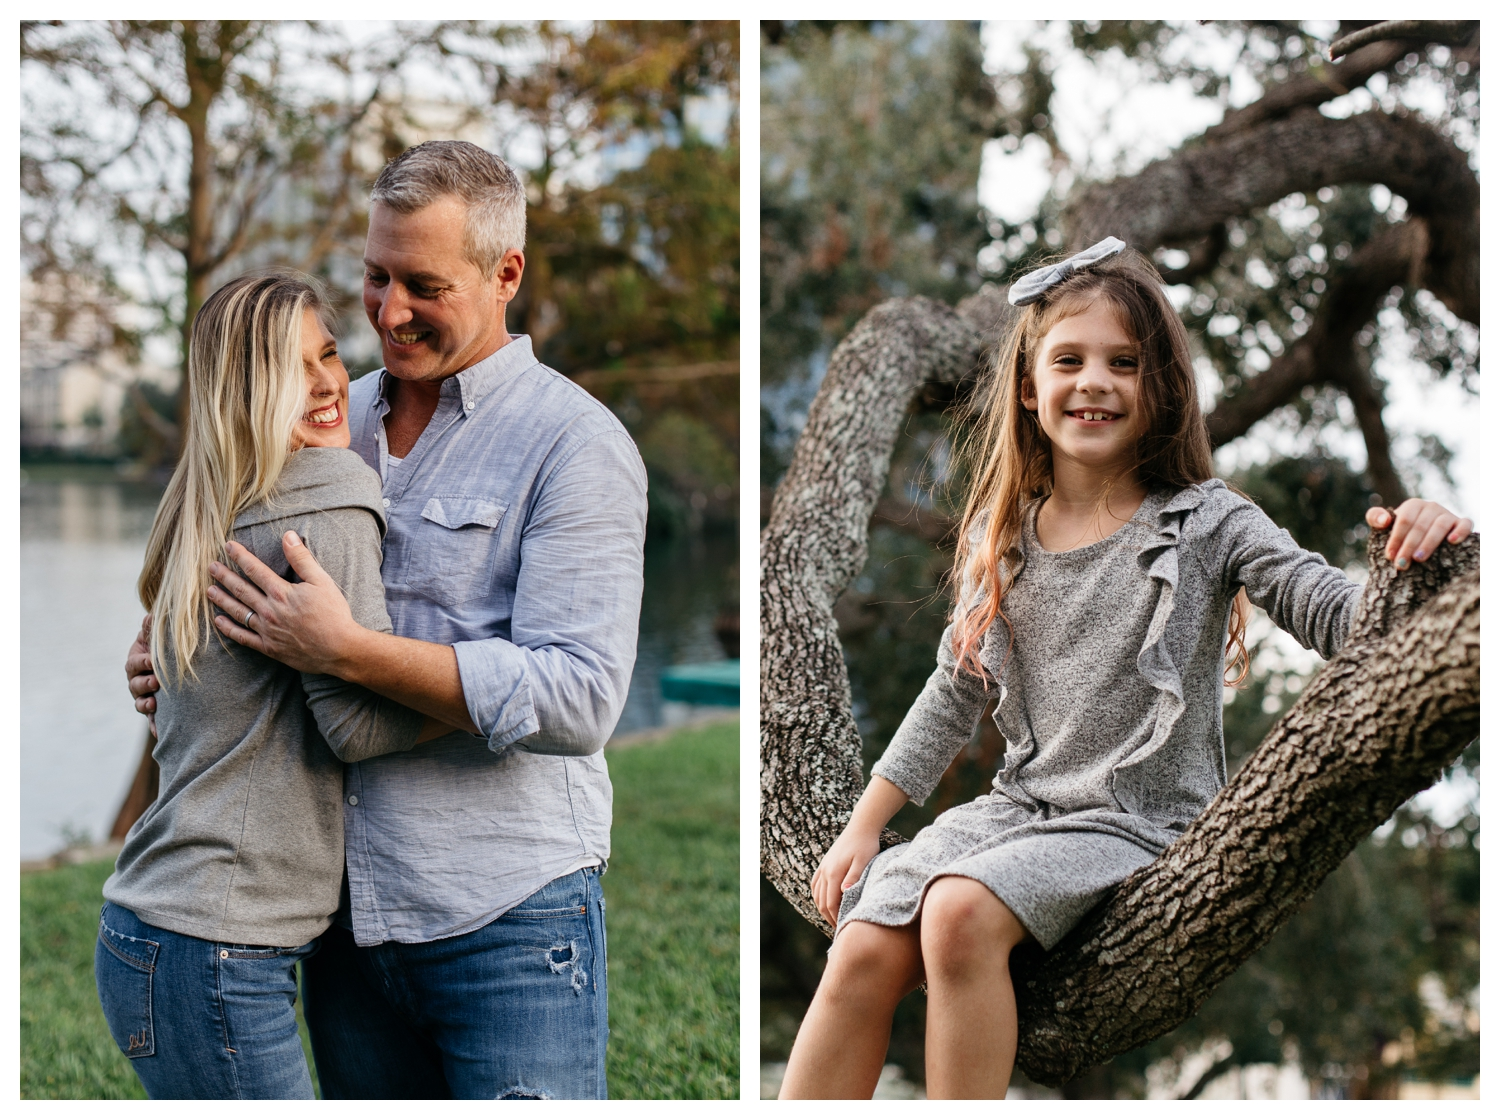 Winter Park Family Photographer Lifestyle Family Session.jpg